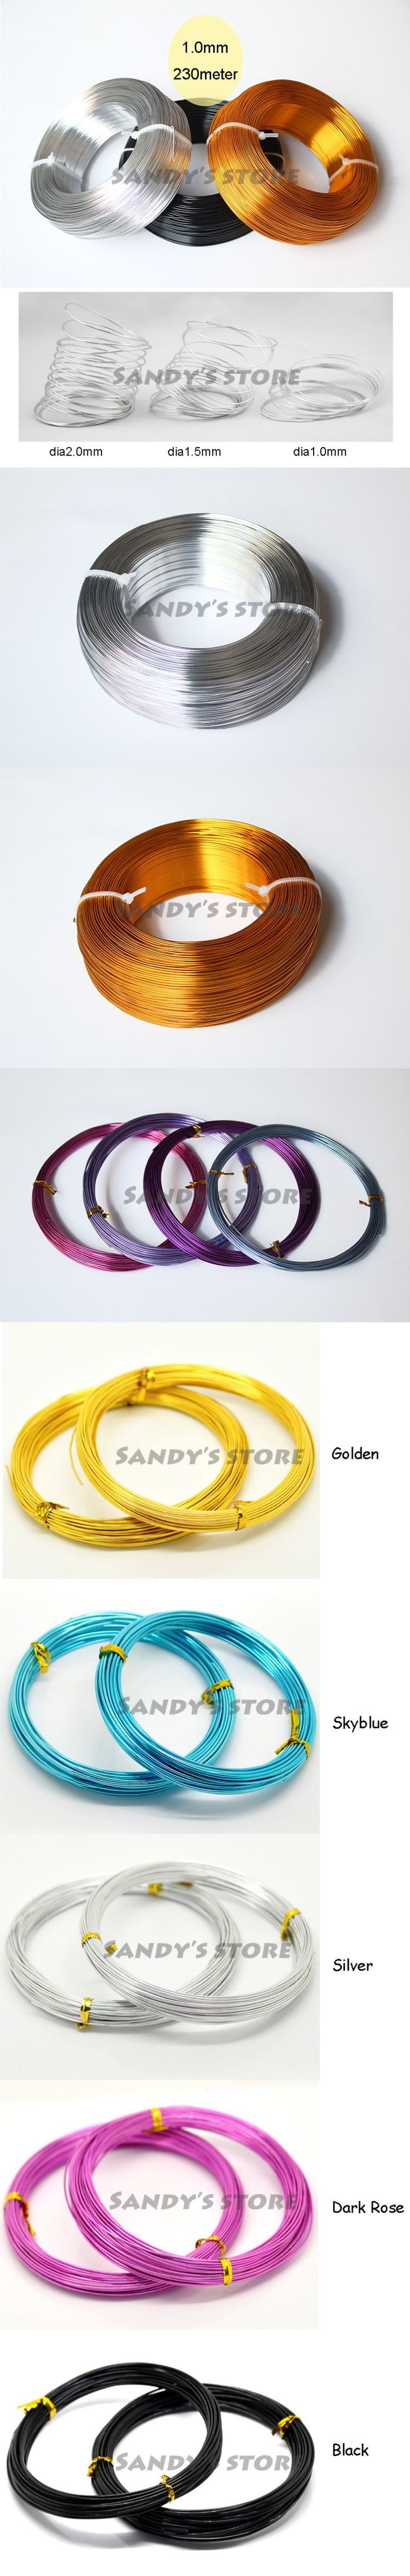 Selecting cheap wholesale-colored oxidized aluminium wire jewelry craft soft 1mm 18 gauge wire coil 230m/roll (755feet) diy decor wrap wire free shipping on DHgate.com? Here, you can find a large selection of cord & wire at cheap price and with best service.